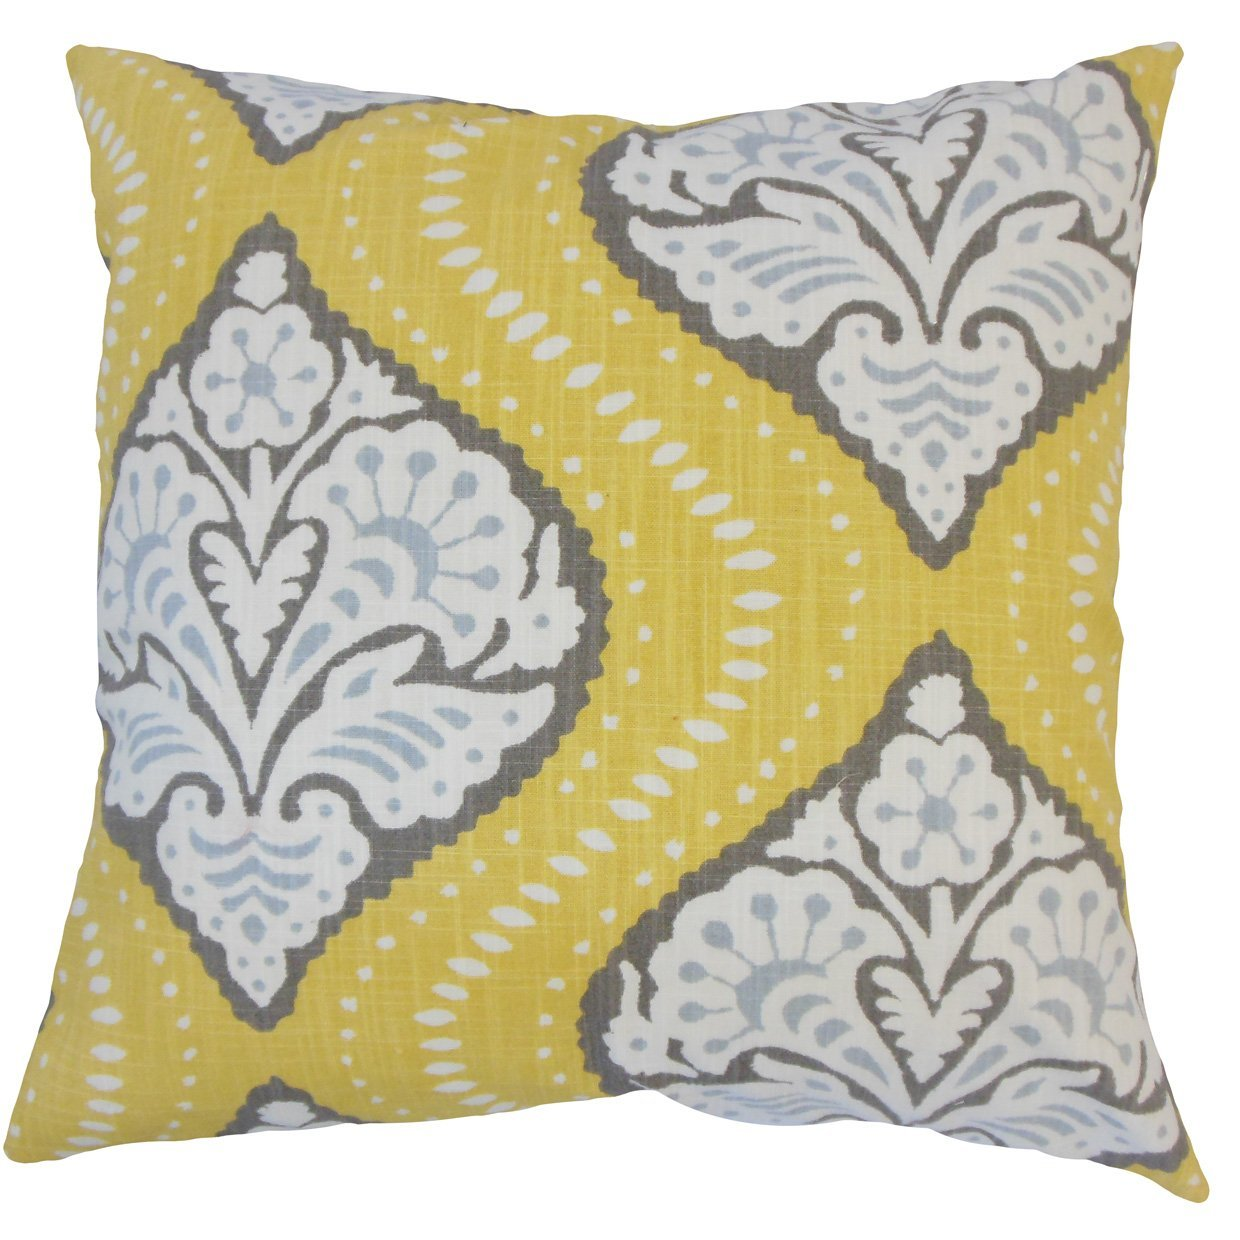 Boho Throw Pillow Cover